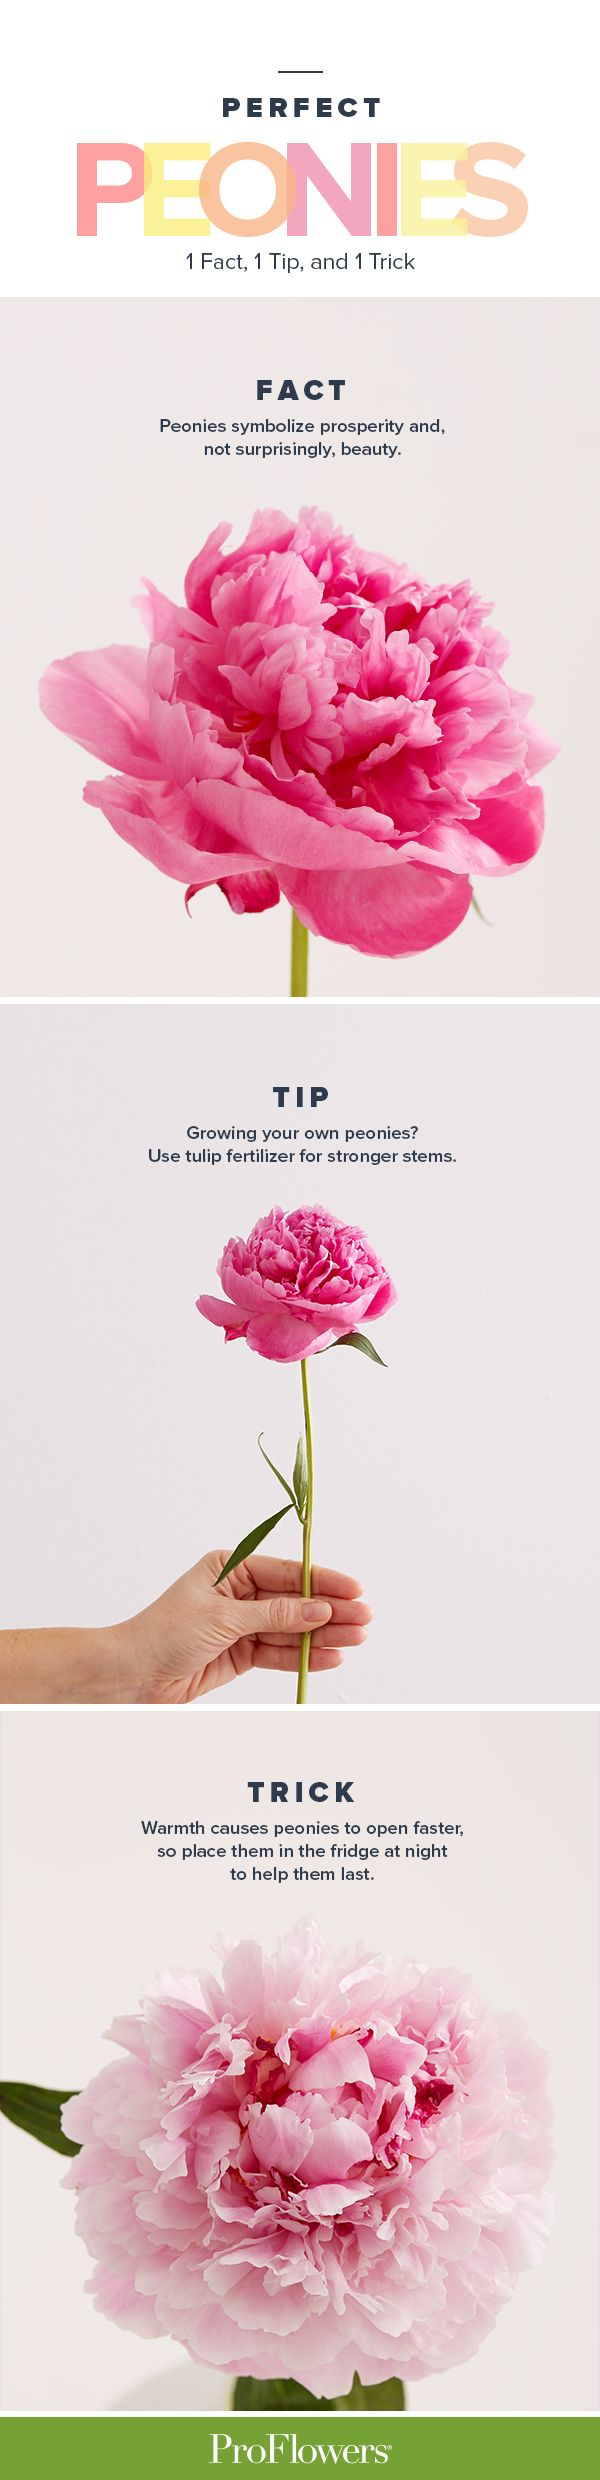 Peonies: They're perfectly pink, fluffy, and smell like heaven. Here's a smart tip, a sneaky trick, and a little-known-fact for all you peony lovers out there.